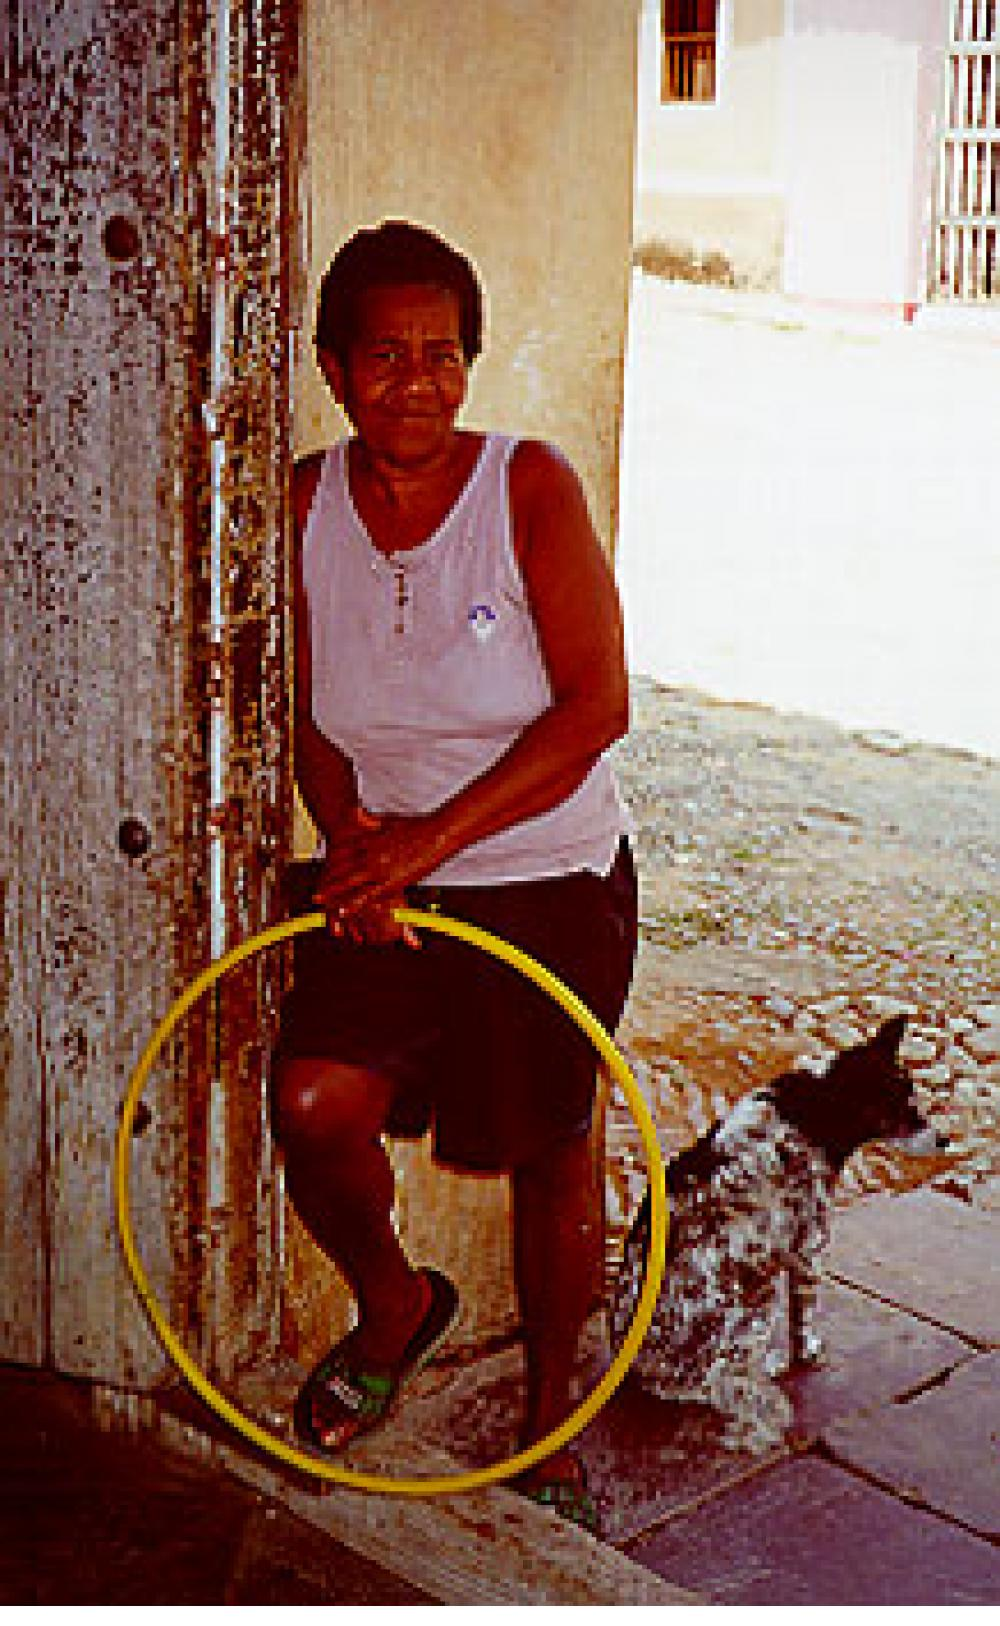 A woman welcomes us to her home in Trinidad, Cuba.